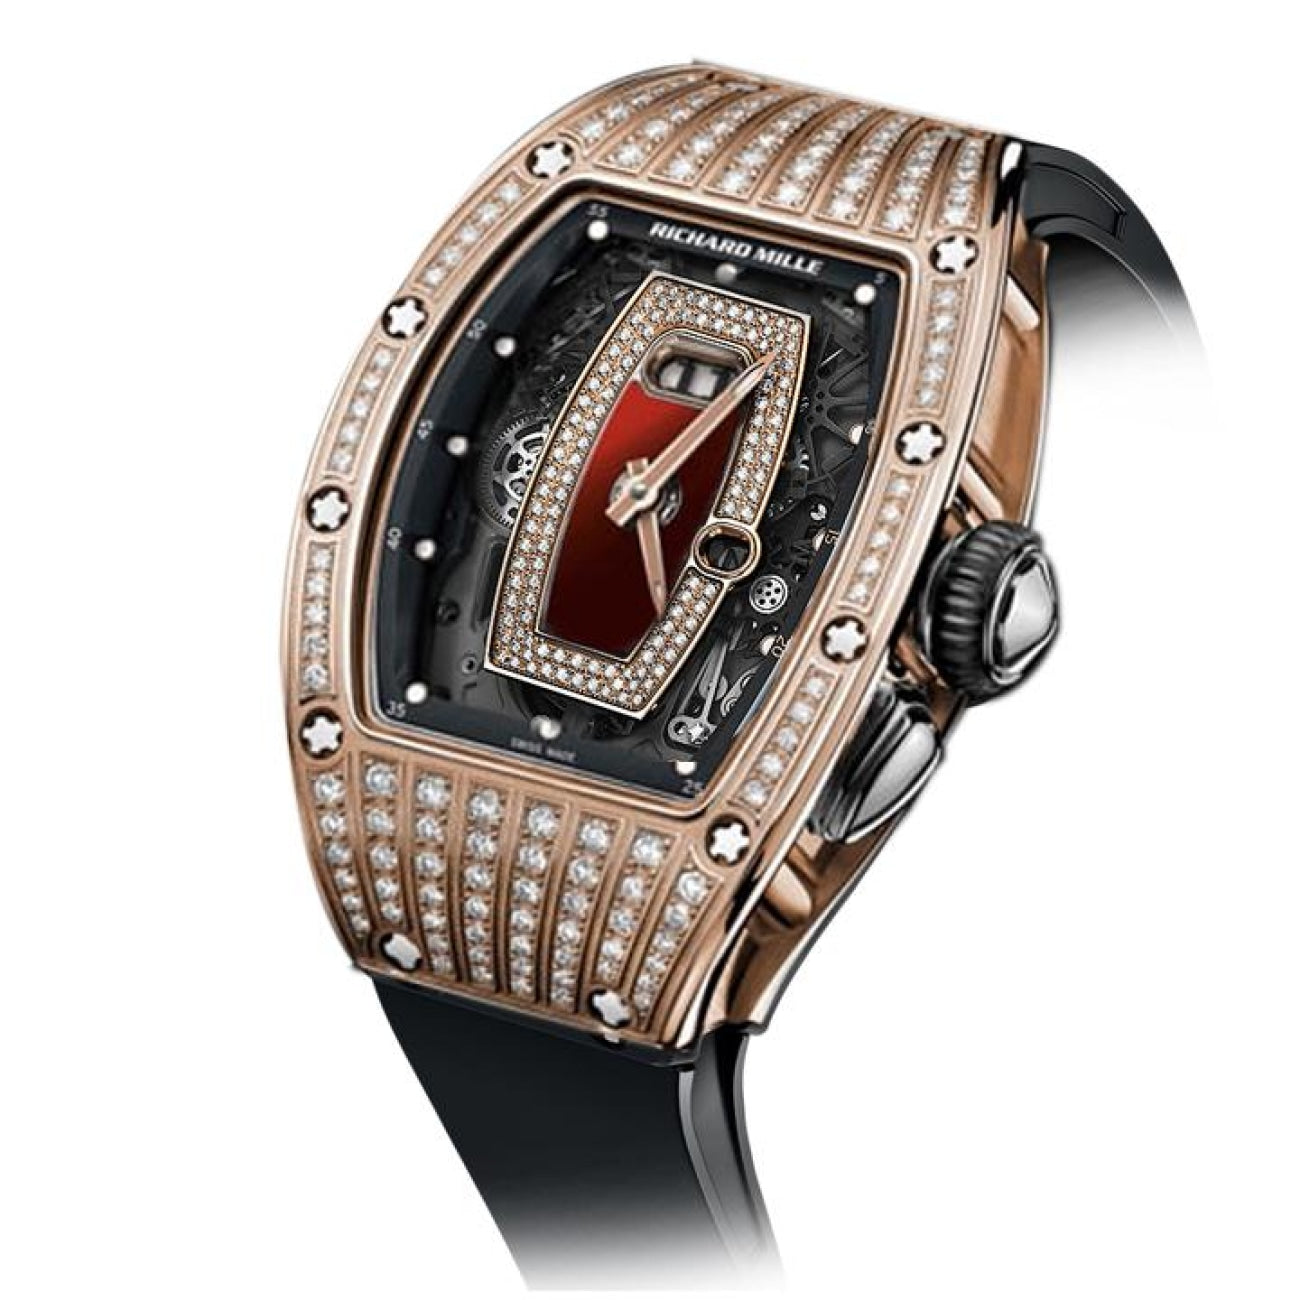 Richard Mille Watches - RM 037 | Manfredi Jewels